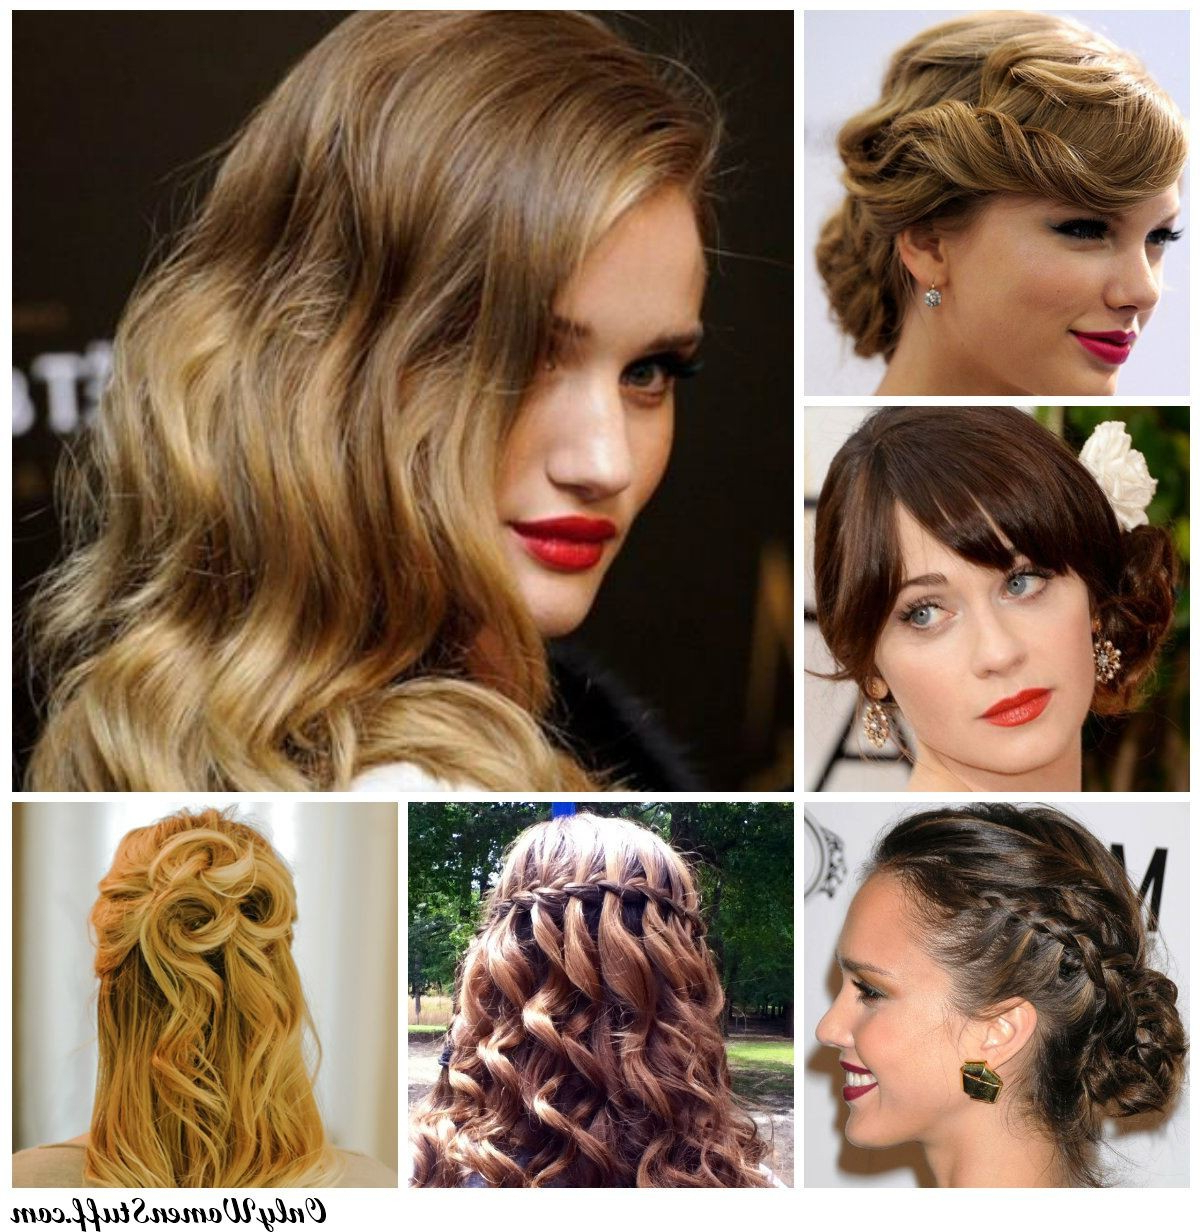 Easy Formal Hairstyles For Medium Hair Innovative Prom Hairstyles Within Most Current Cute Medium Hairstyles For Prom (View 9 of 20)